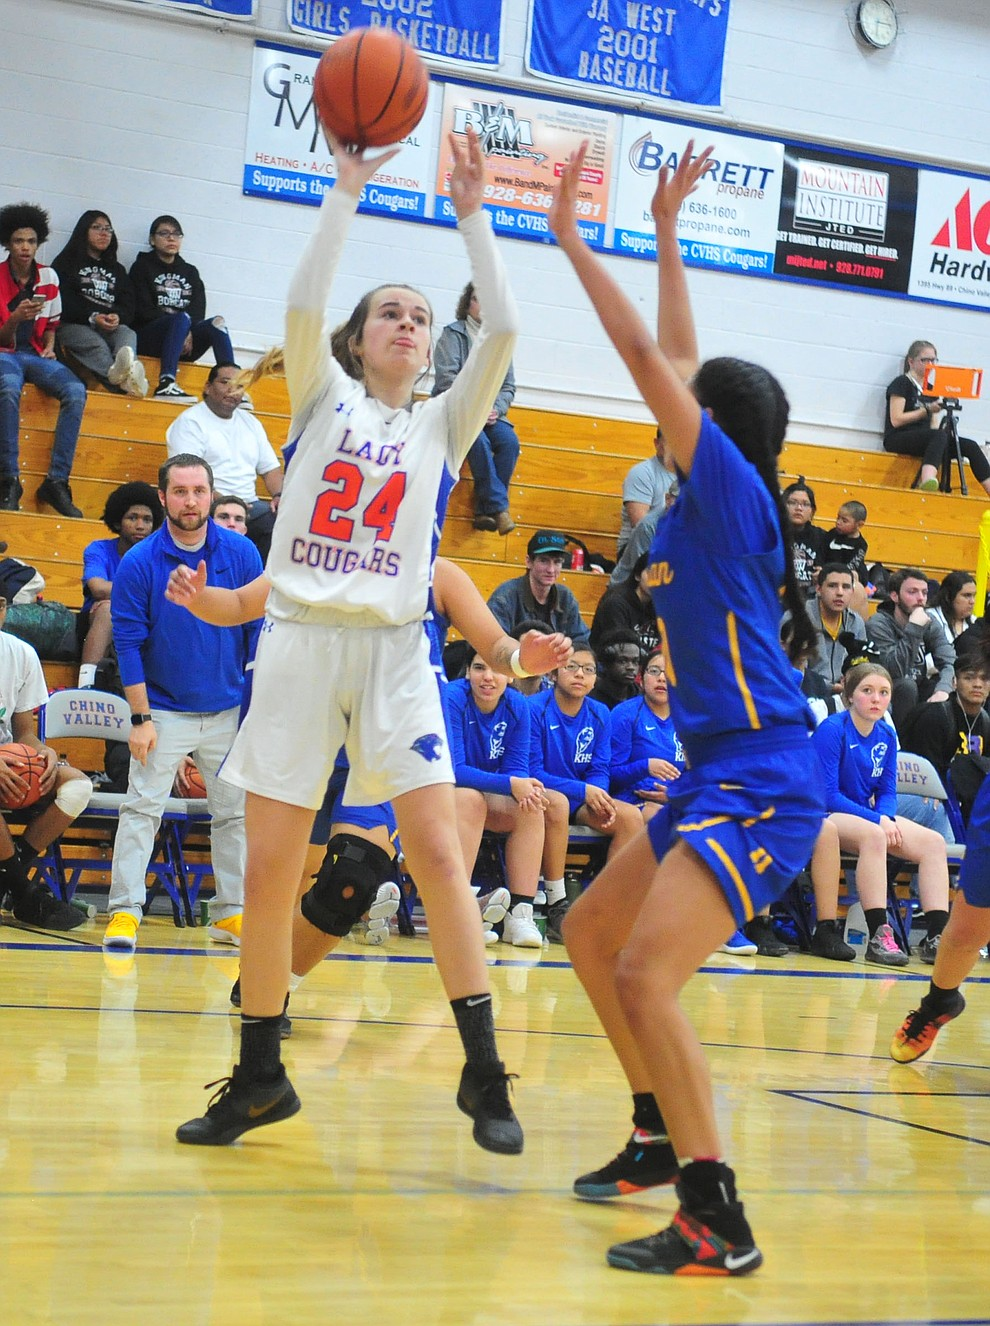 Chino Valley's Lindsey ten Berge takes and makes a shot as they face the Kingman Bulldogs Thursday, Jan. 24, 2019 in Chino Valley. (Les Stukenberg/Courier).